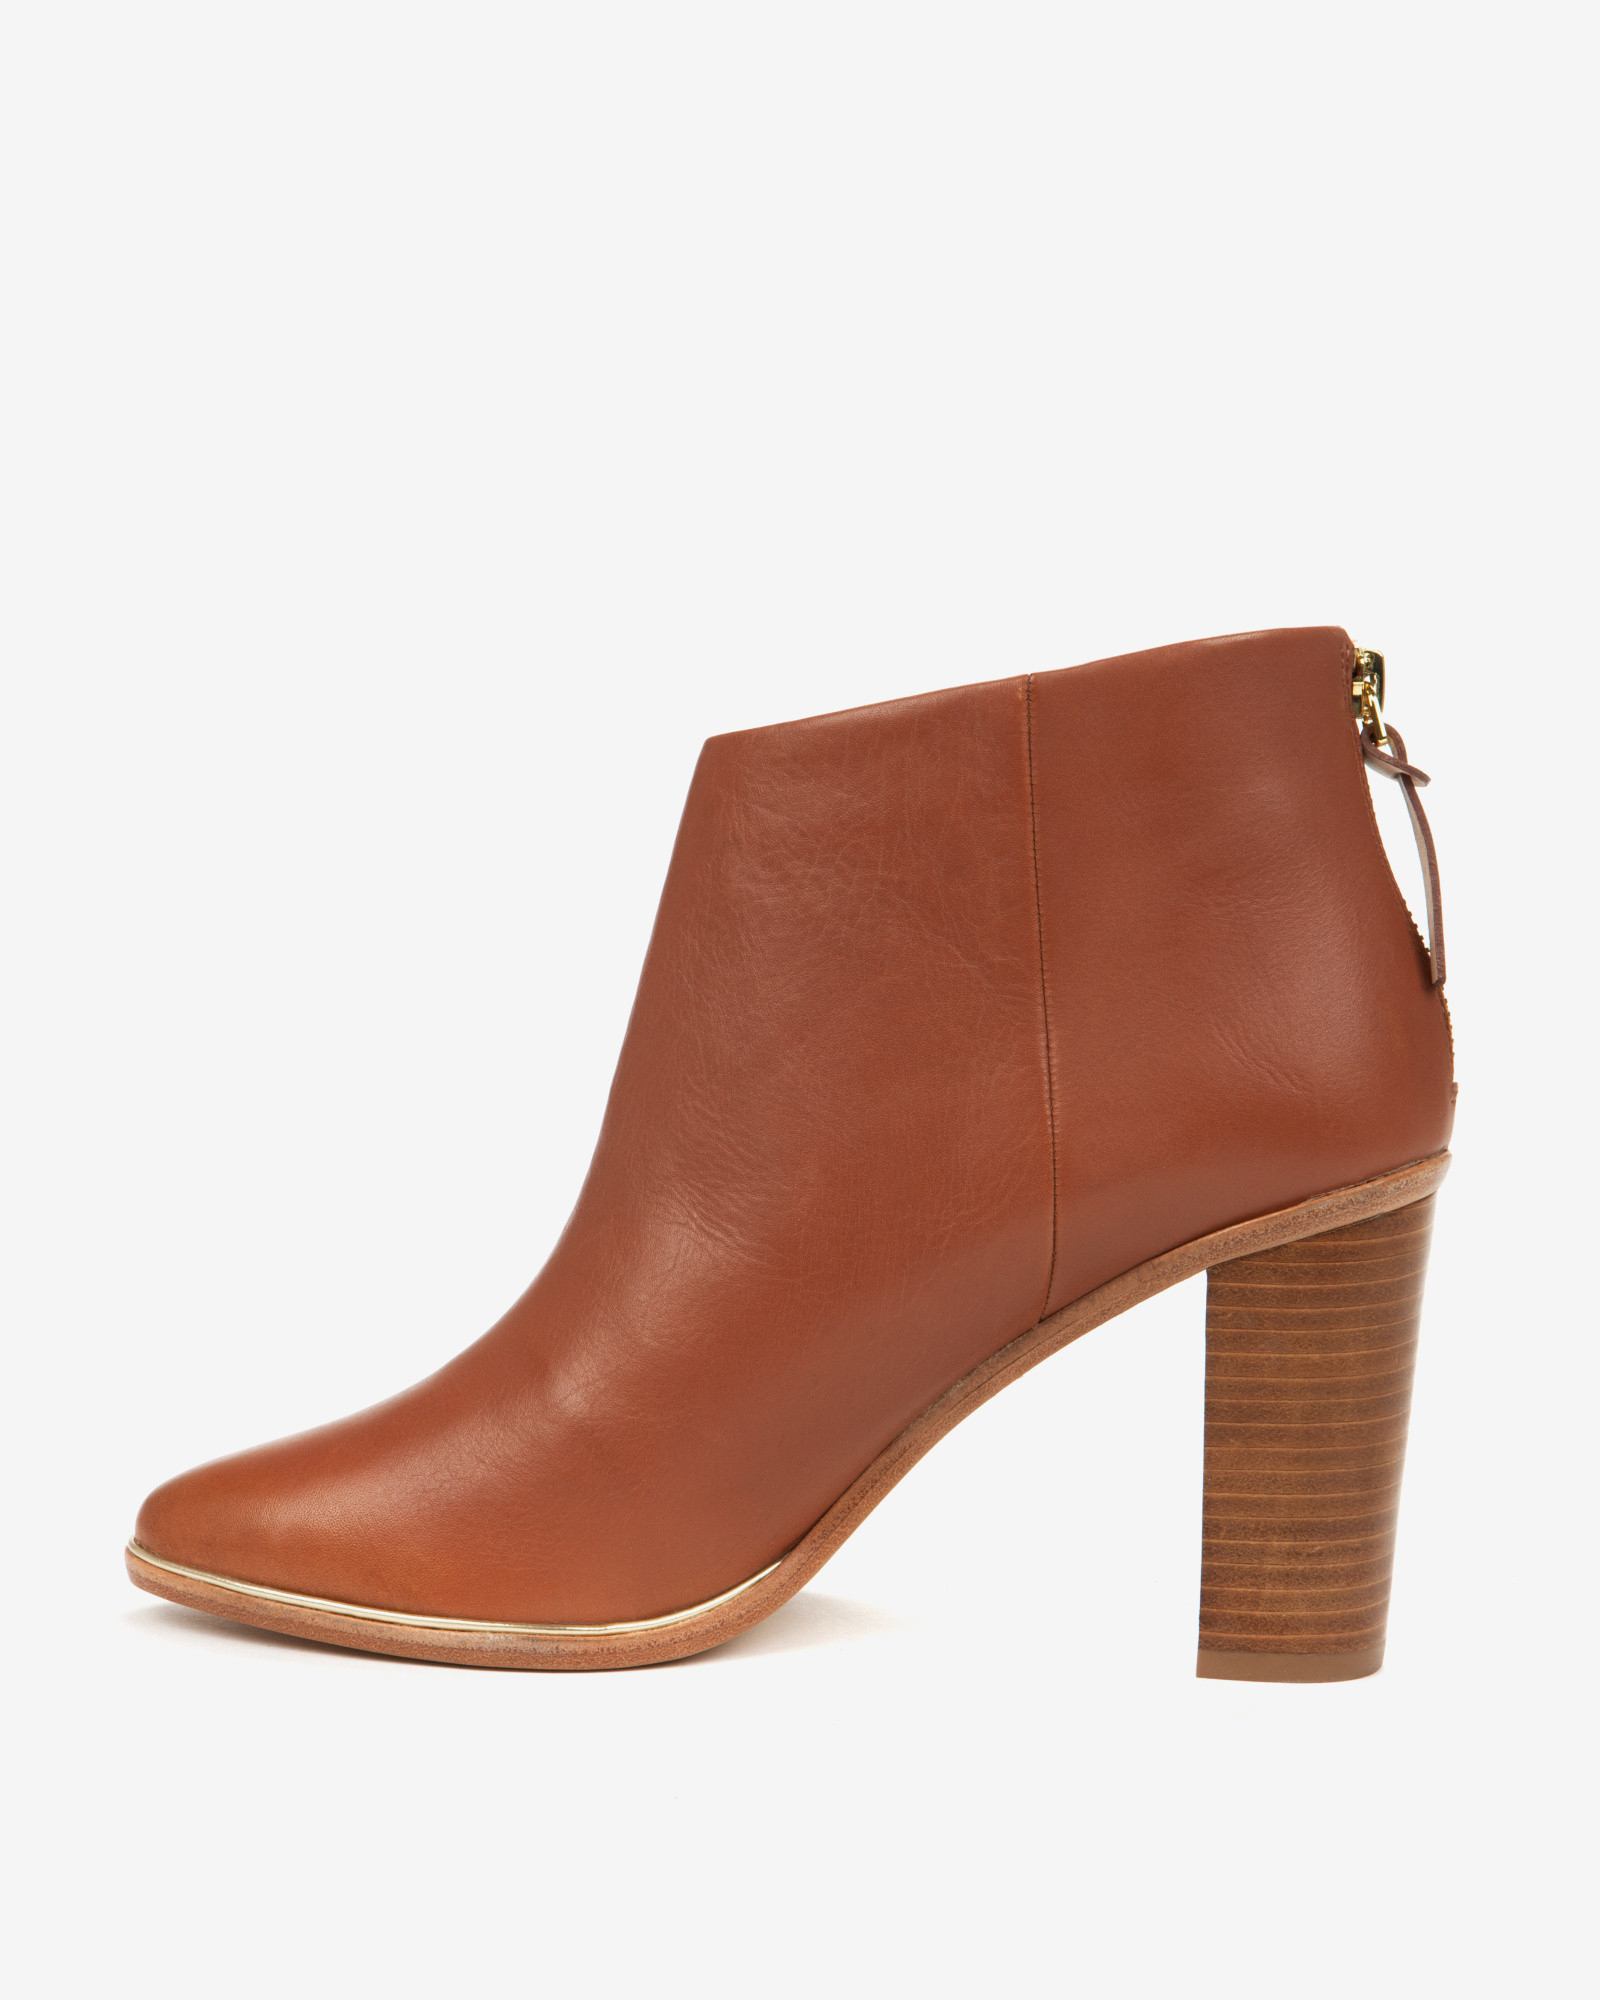 cc0b77aeee9 Ted Baker Brown Leather Ankle Boots